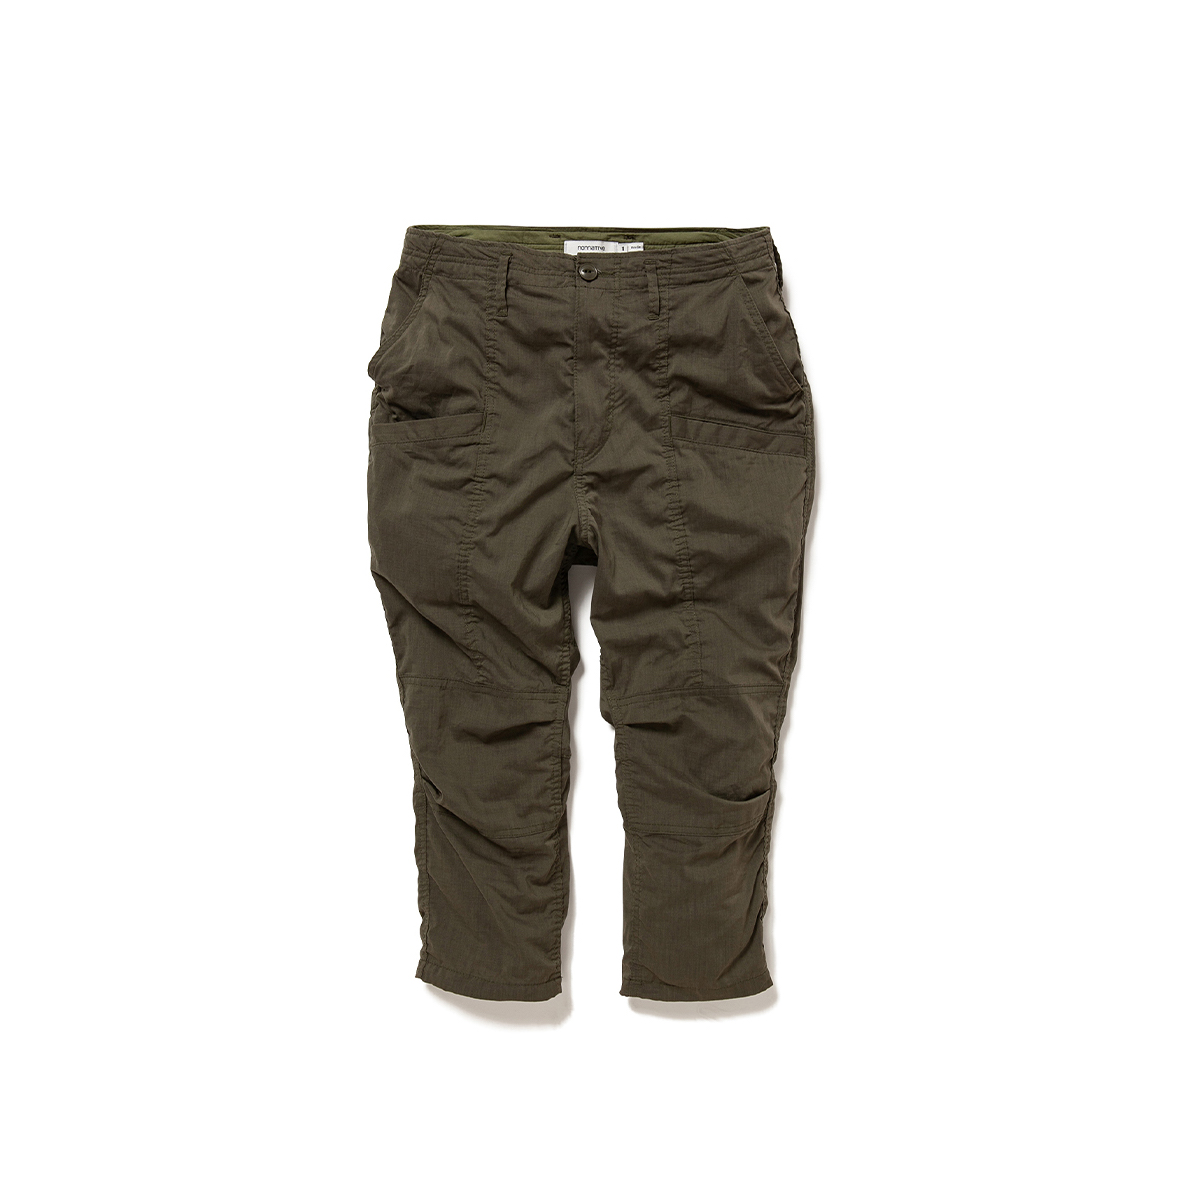 nonnative / EDUCATOR 6P TROUSERS SHIN CUT RELAXED FIT P/L WEATHER STRETCH COOLMAX® (Olive)正面